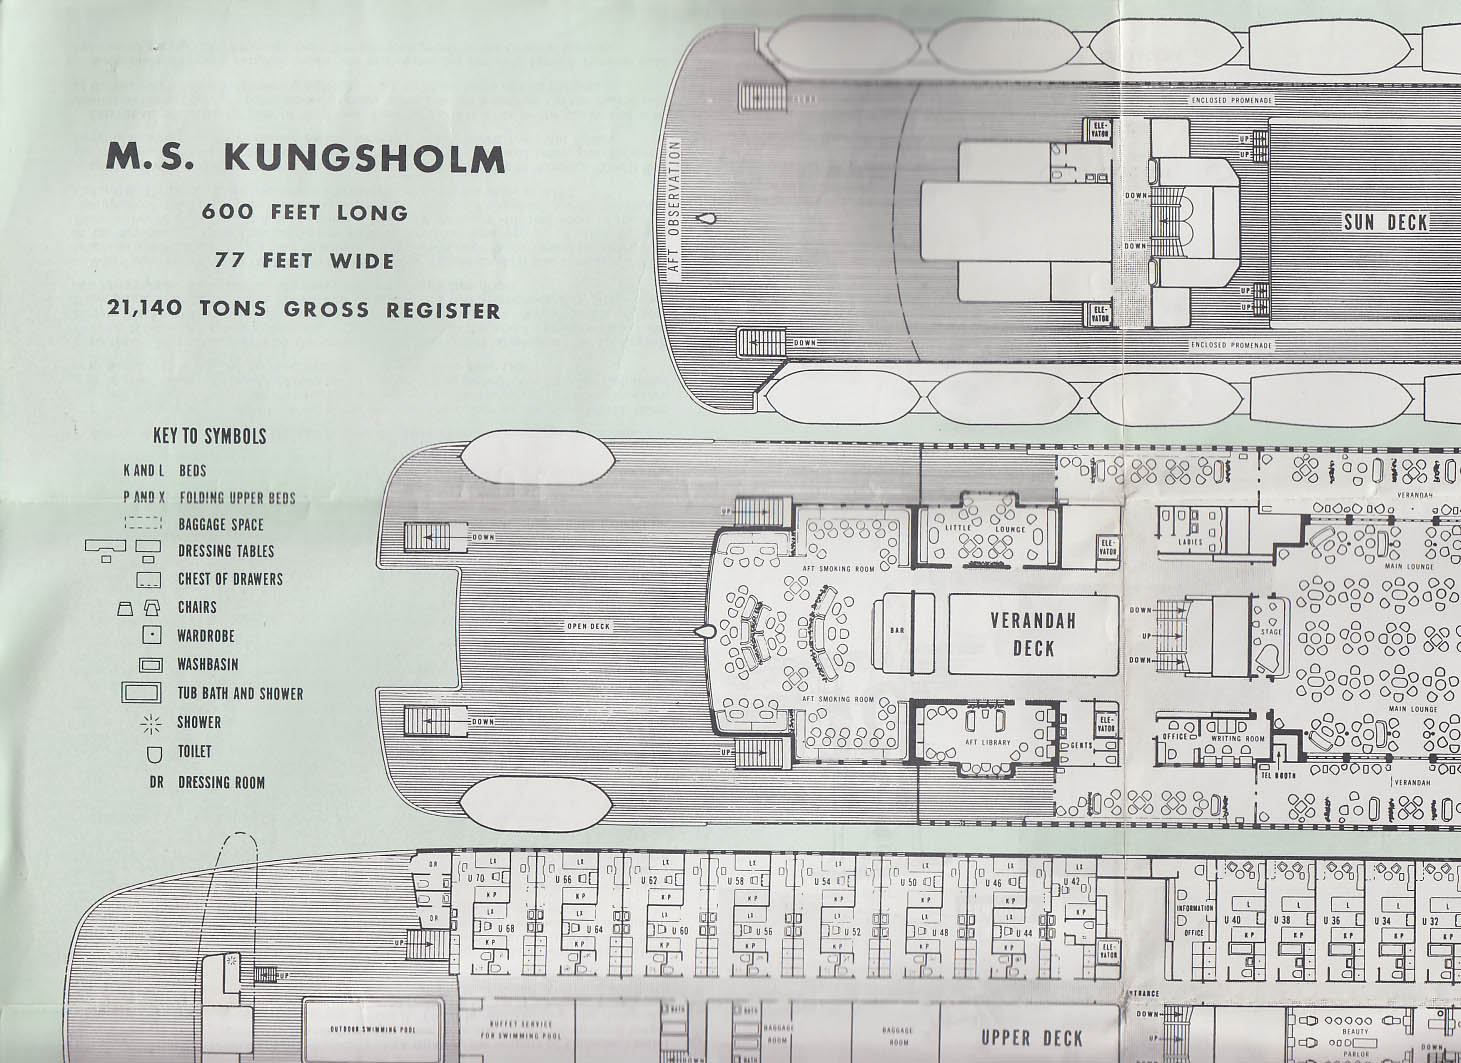 Swedish American Line M S Kungsholm Masonic Cruise brochure deck plan 1959